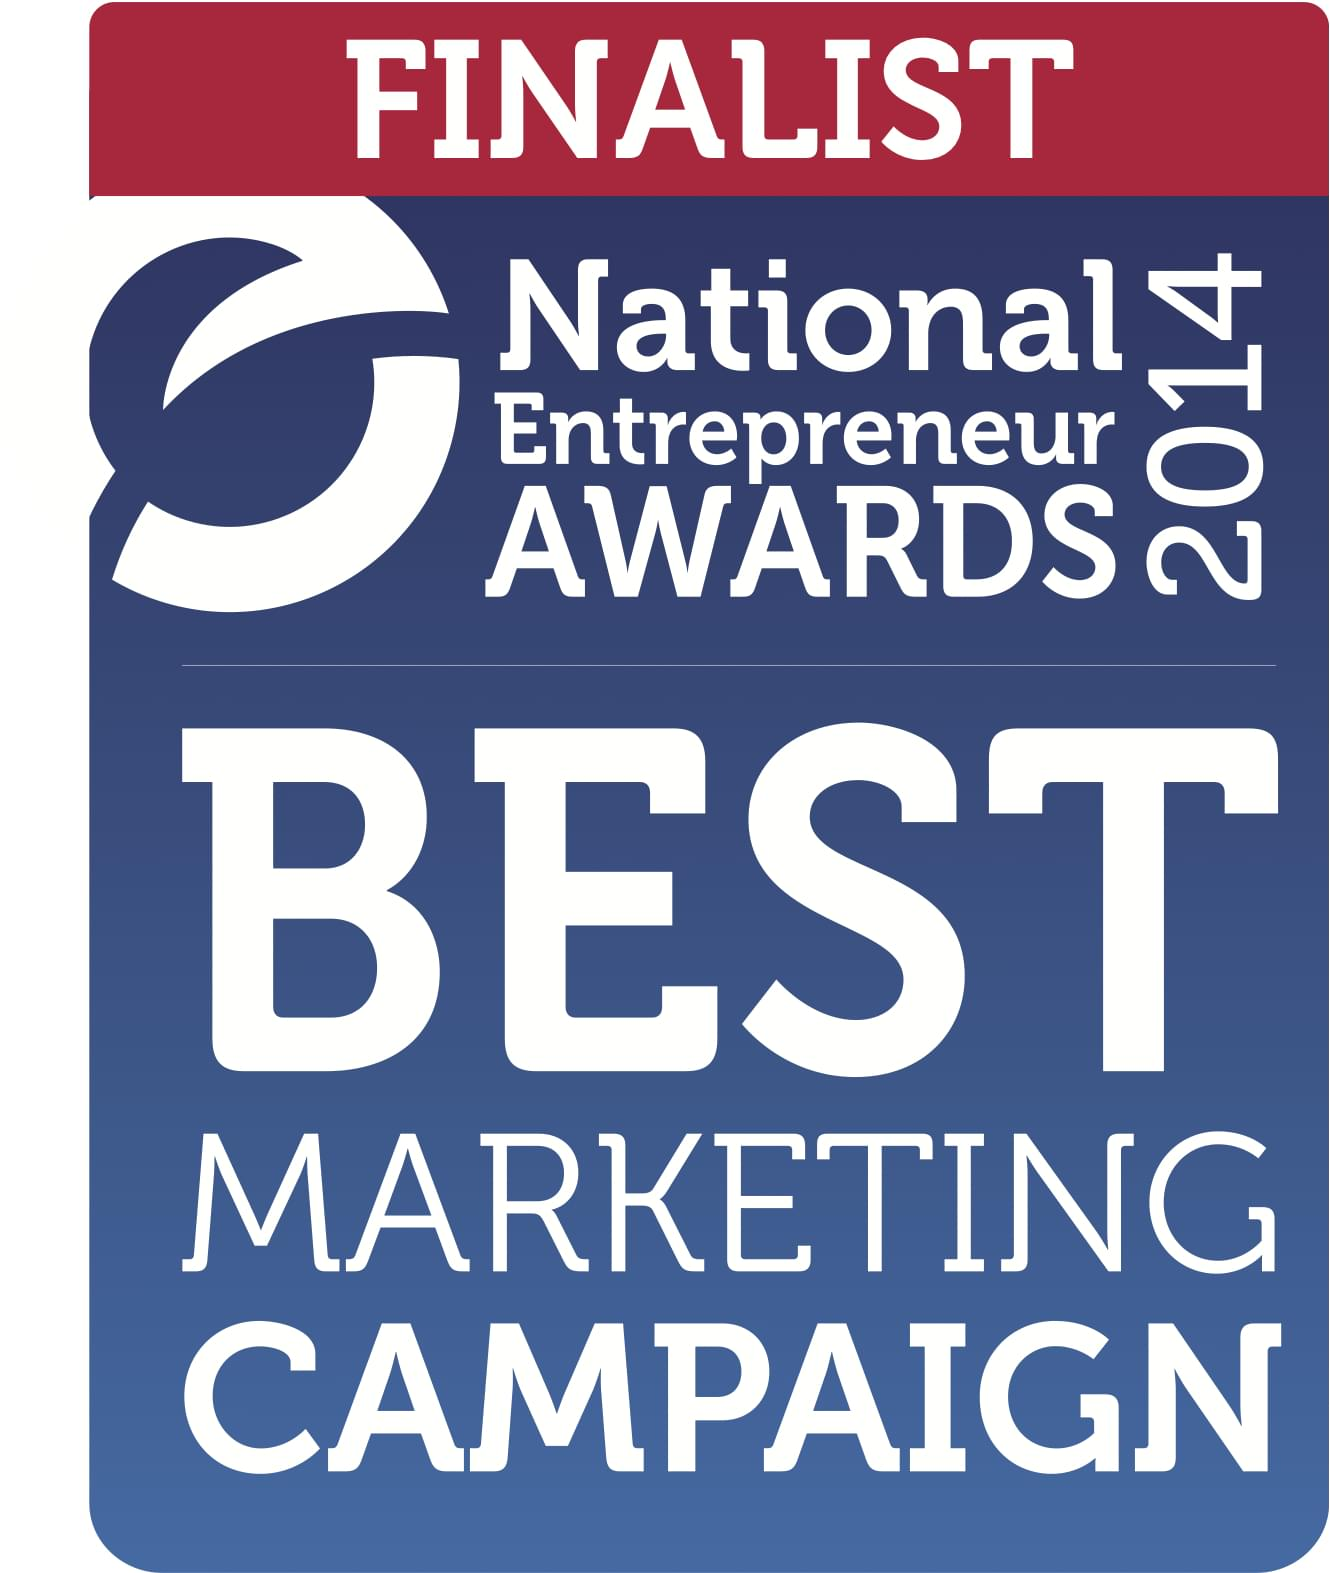 Finalist badge from the National Entrepreneur Awards 2014